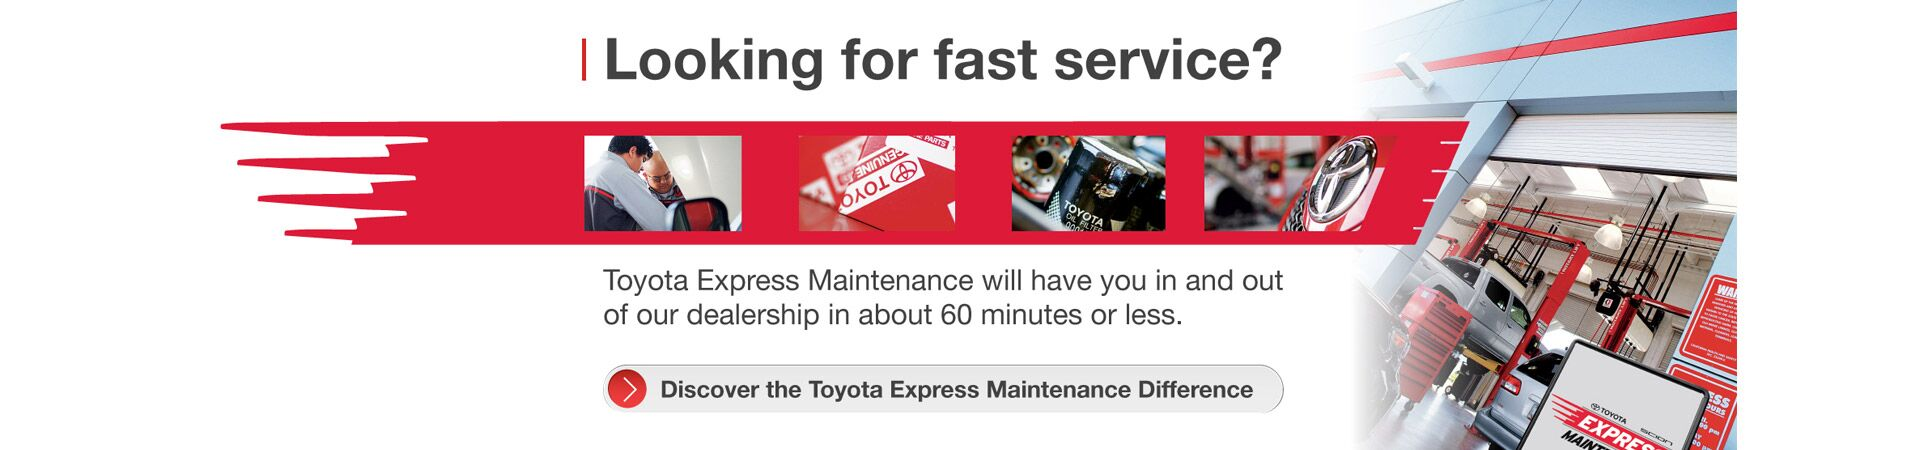 Learn More About Toyota Express Maintenance.